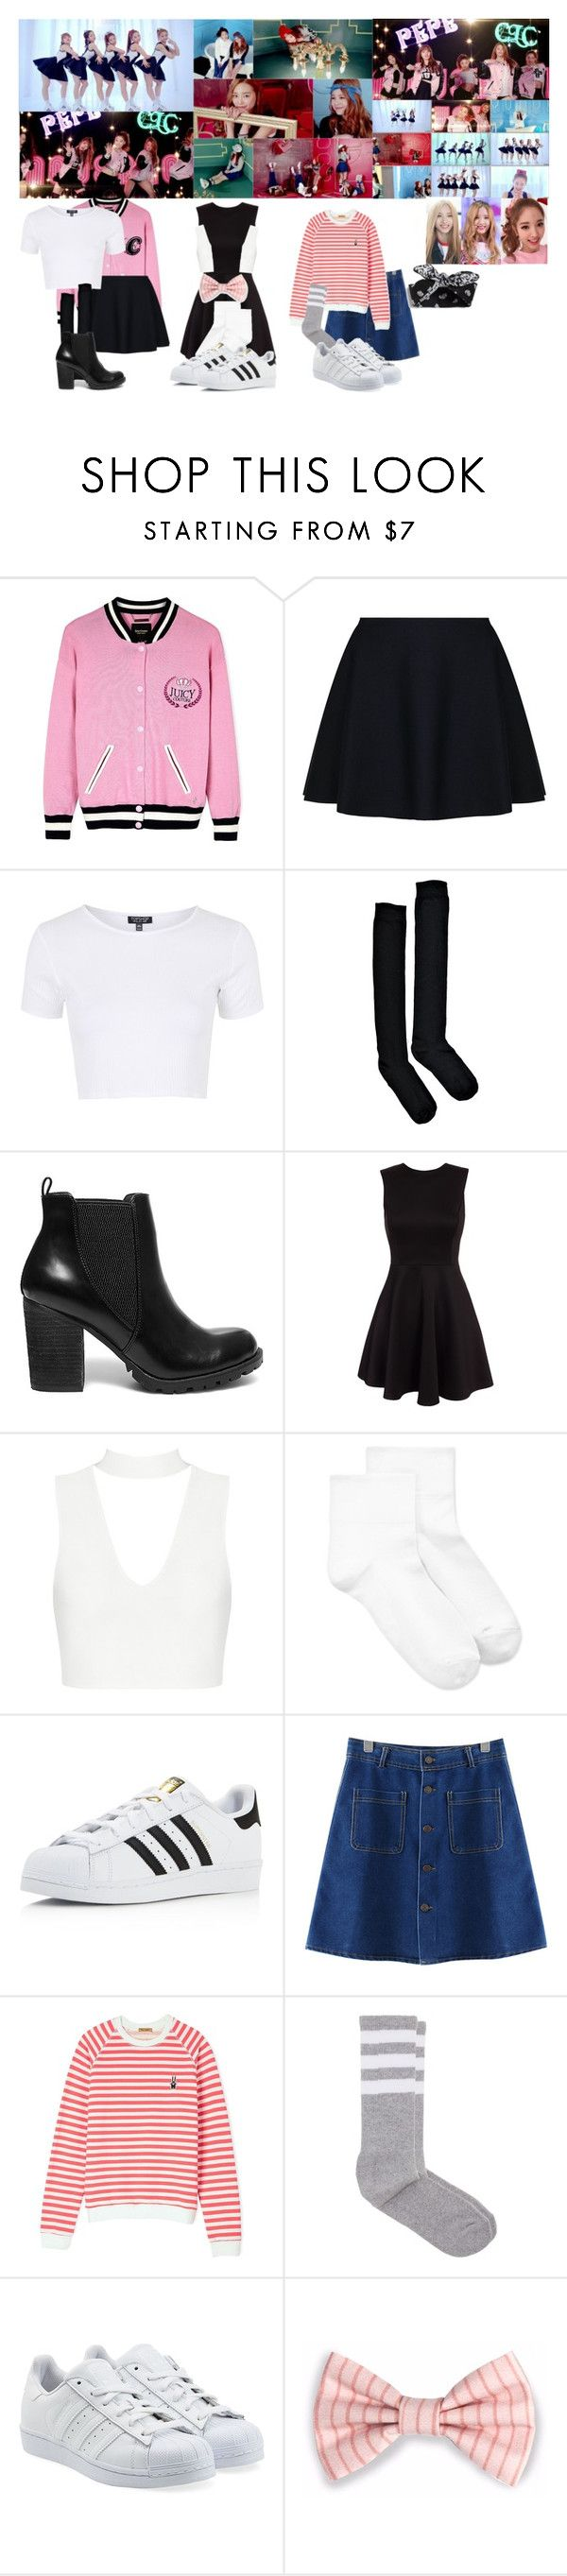 """CLC - Pepe MV"" by ohmygirllover5 ❤ liked on Polyvore featuring PèPè, Juicy Couture, TWISTY PARALLEL UNIVERSE, Topshop, Boohoo, Steve Madden, Hue, adidas, Chicnova Fashion and Peter Jensen"